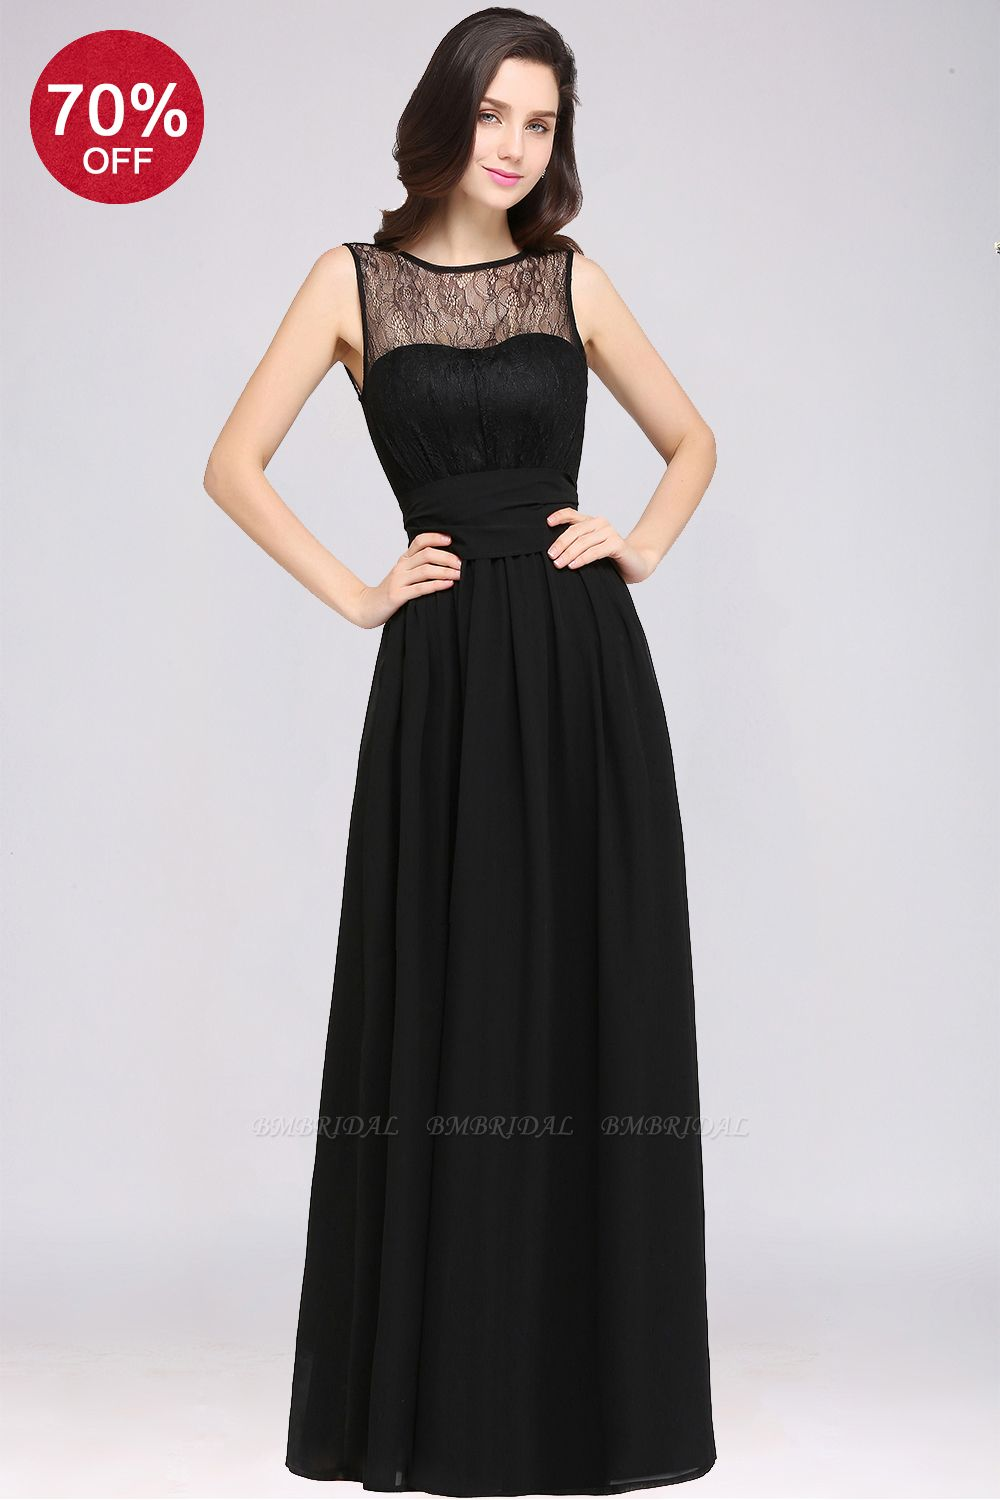 BMbridal Sexy Black Chiffon Lace Long Affordable Bridesmaid Dresses In Stock